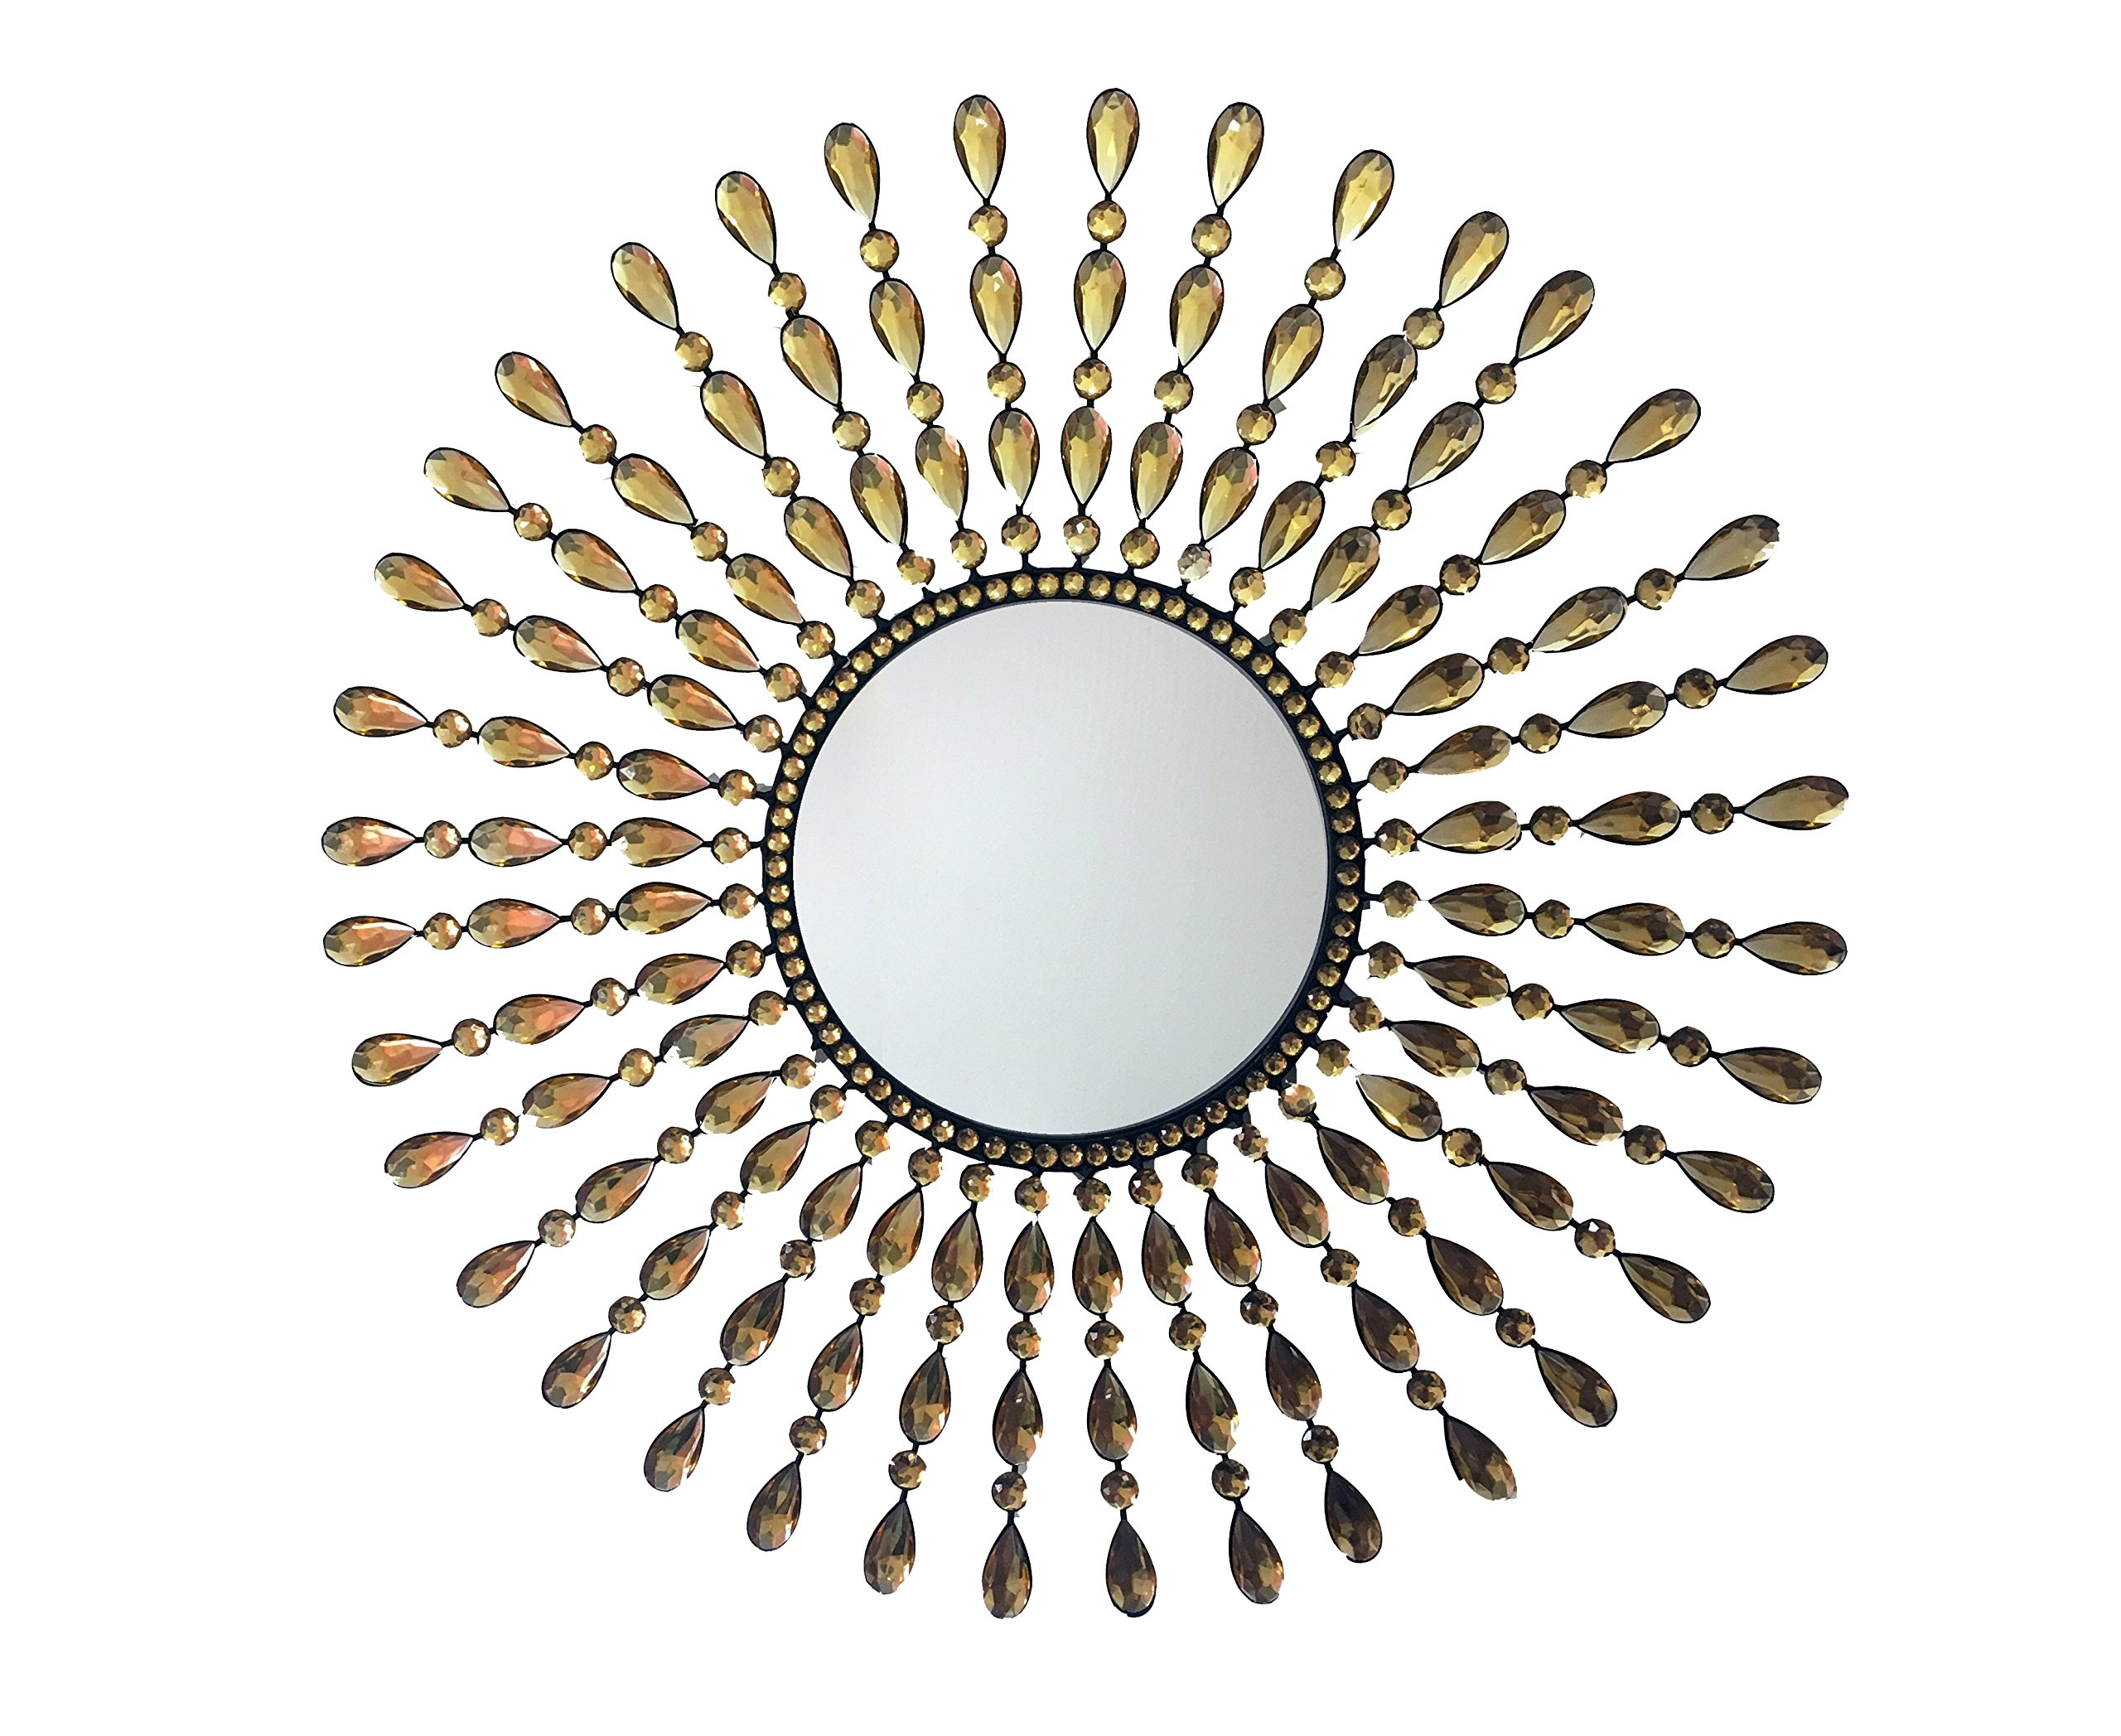 Sunburst Wall Mirror Decorative Home Accent with Drop Beautiful Champagne Crystals 25''inch Perfect for Living Room, Bathroom Wall Hanging Housewarming Gift